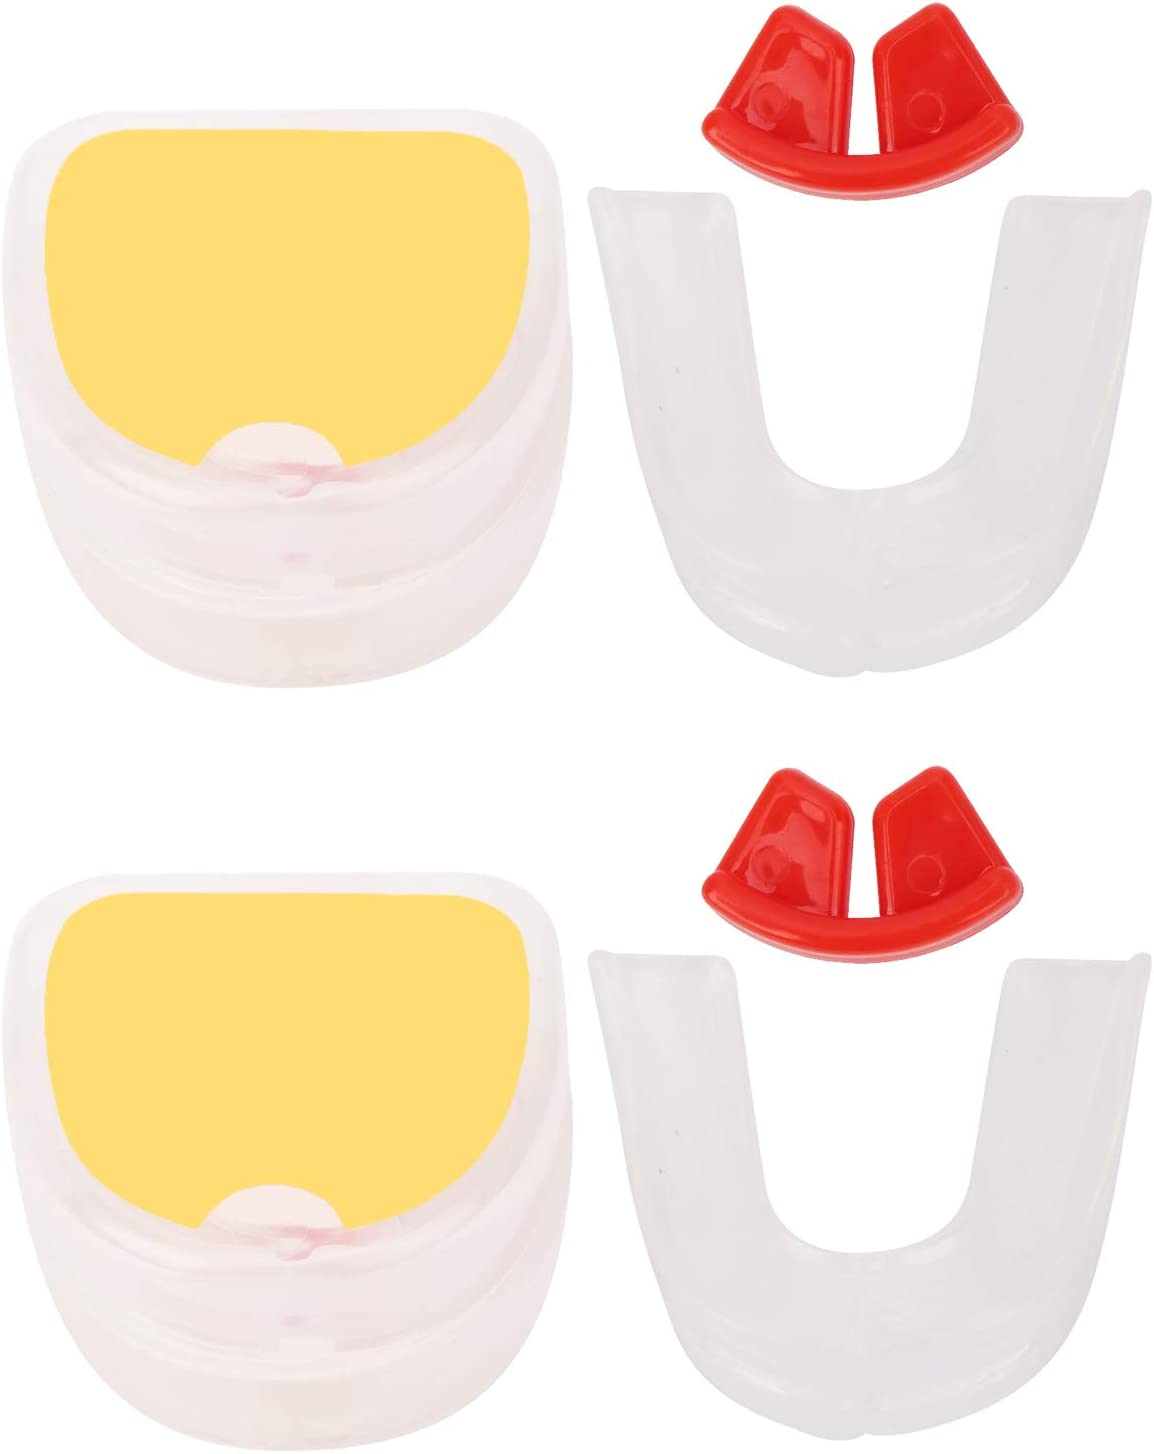 Drfeify 2Set 2021 autumn and winter new Boxing Mouth Guard Transparent Twosided Don't miss the campaign Shield Gum